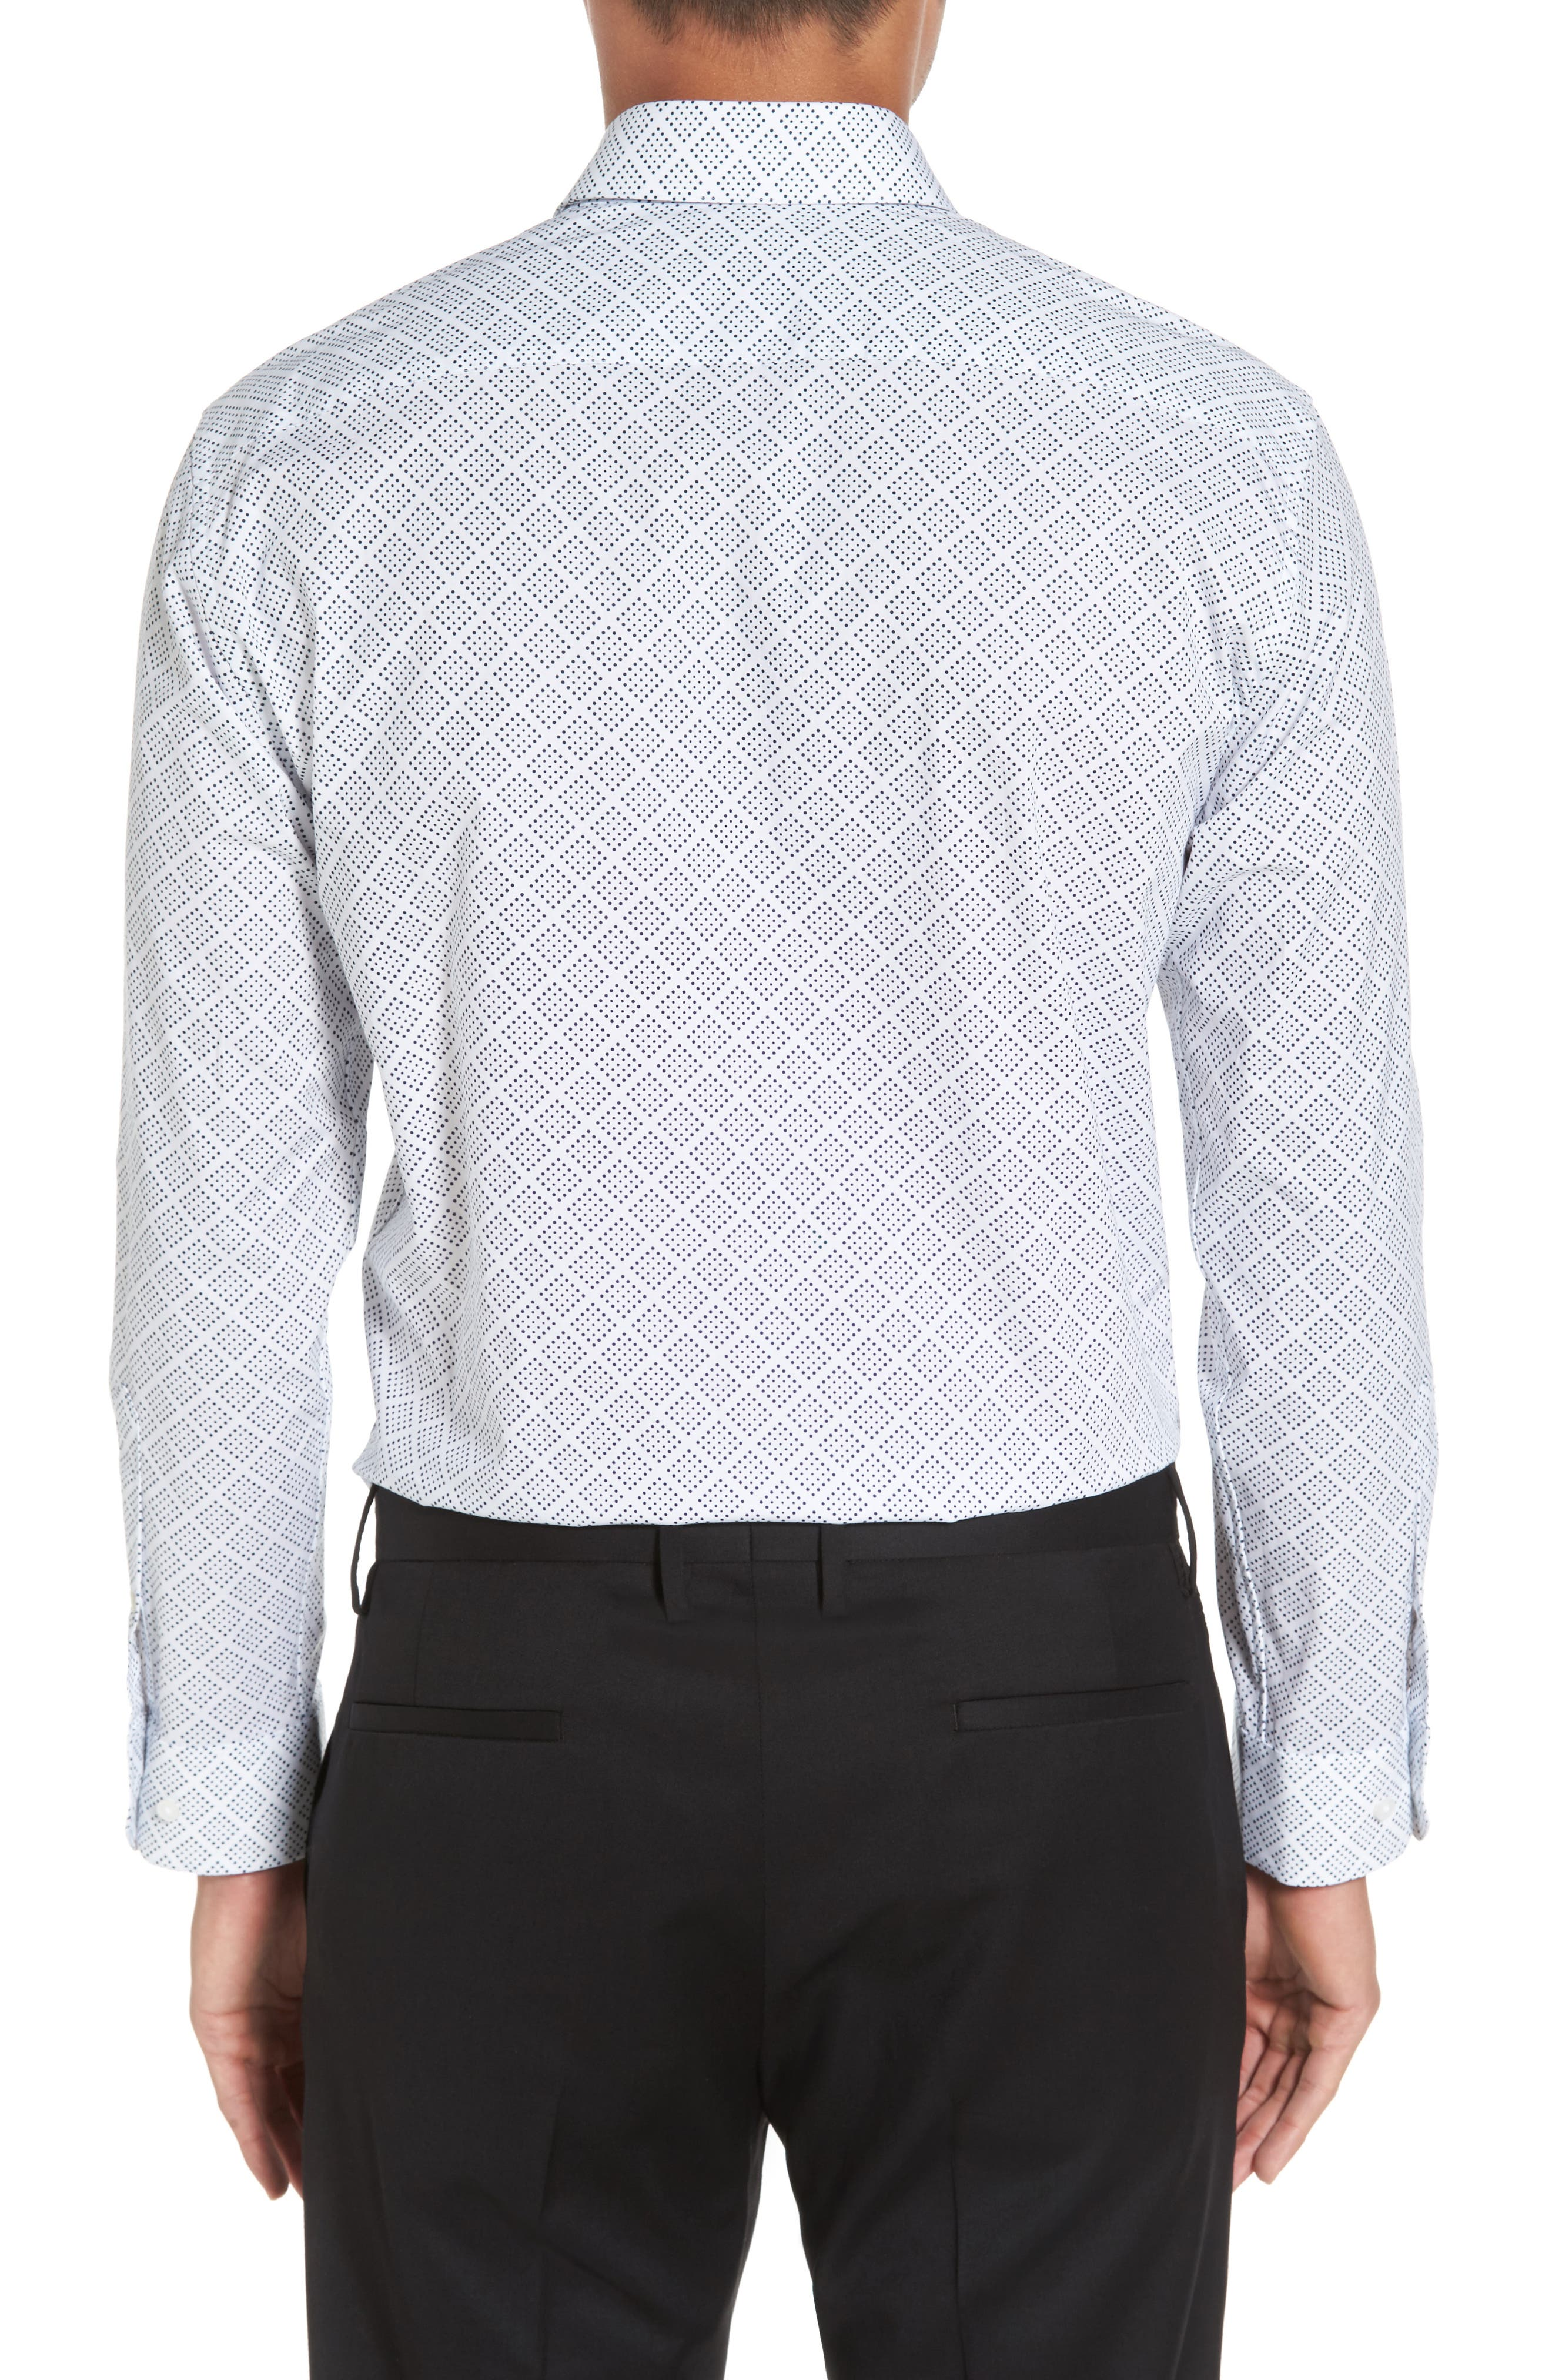 Alternate Image 3  - Calibrate Trim Fit Non-Iron Graphic Stretch Dress Shirt